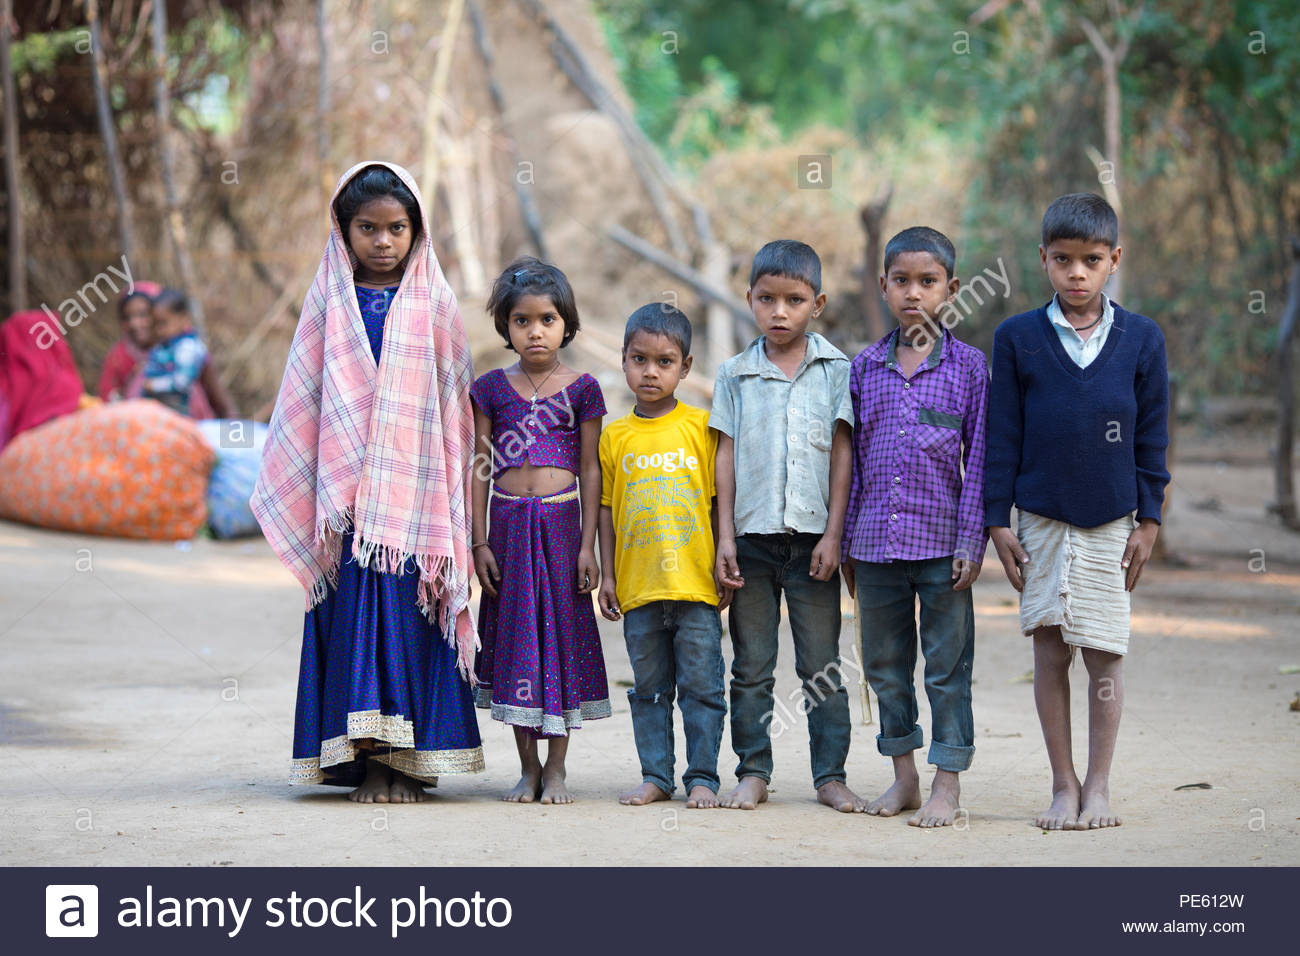 SARUPGANJ, RAJASTHAN, INDIA - JAN 09, 2017 ; An unidentified Indian Children in Village happy to poses for camera, Sarupganj, Rajasthan-India on Jan 0 - Stock Image